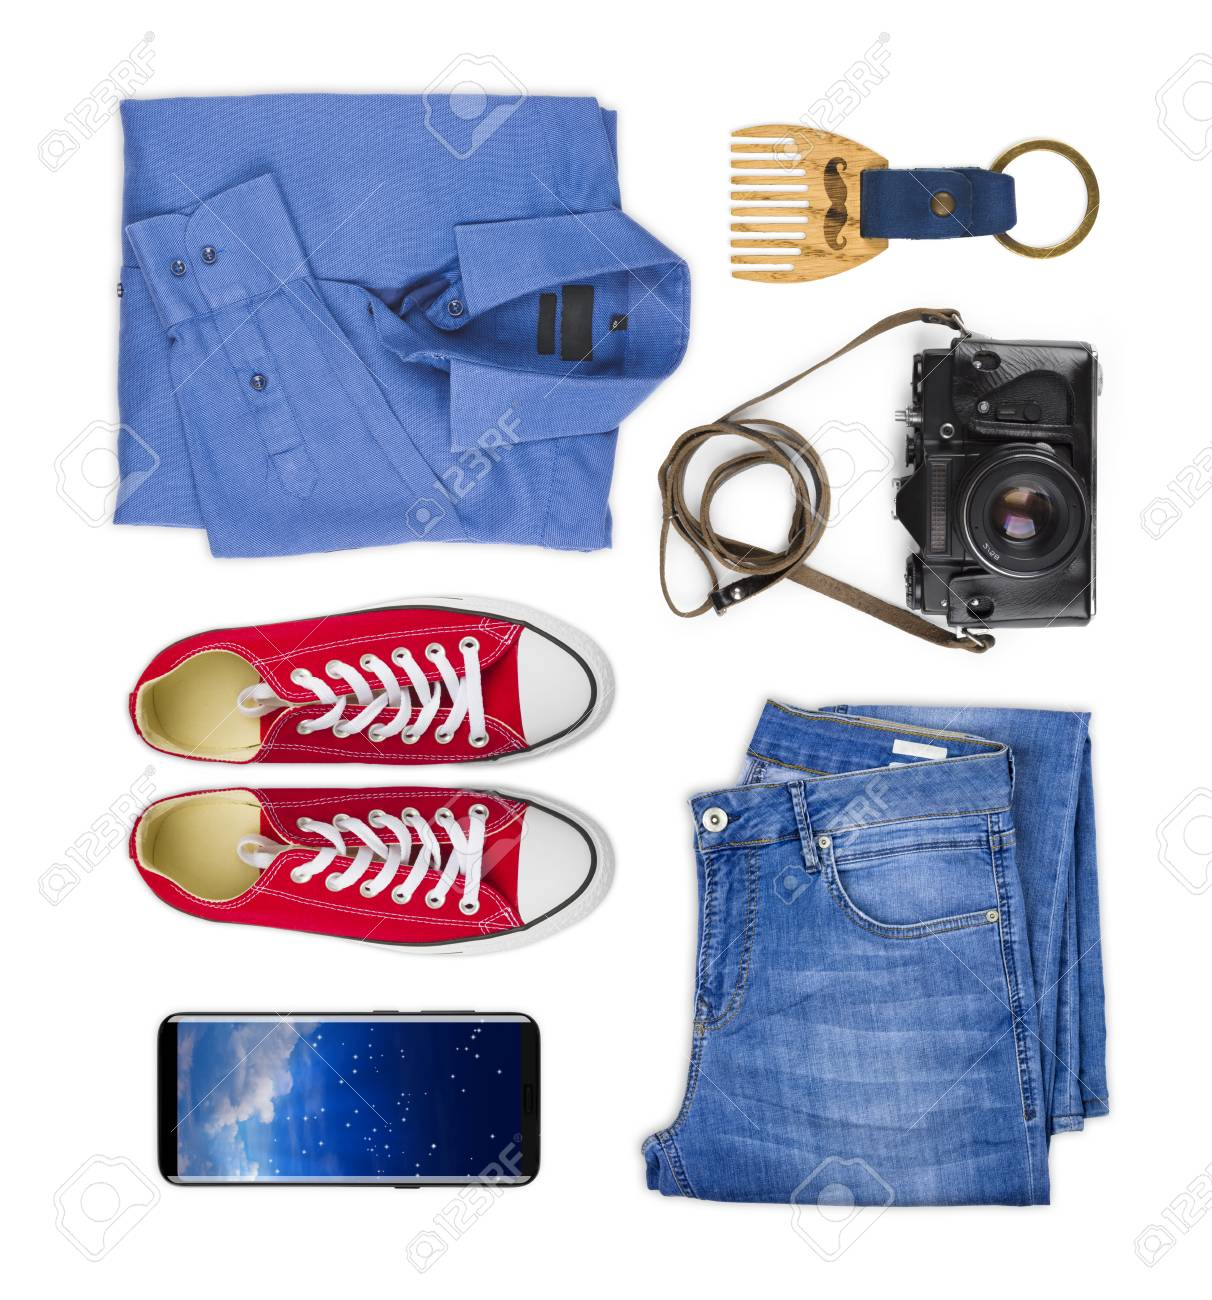 42812b5f50f Collage of traveler clothing and accessories isolated on white background  Stock Photo - 87171578